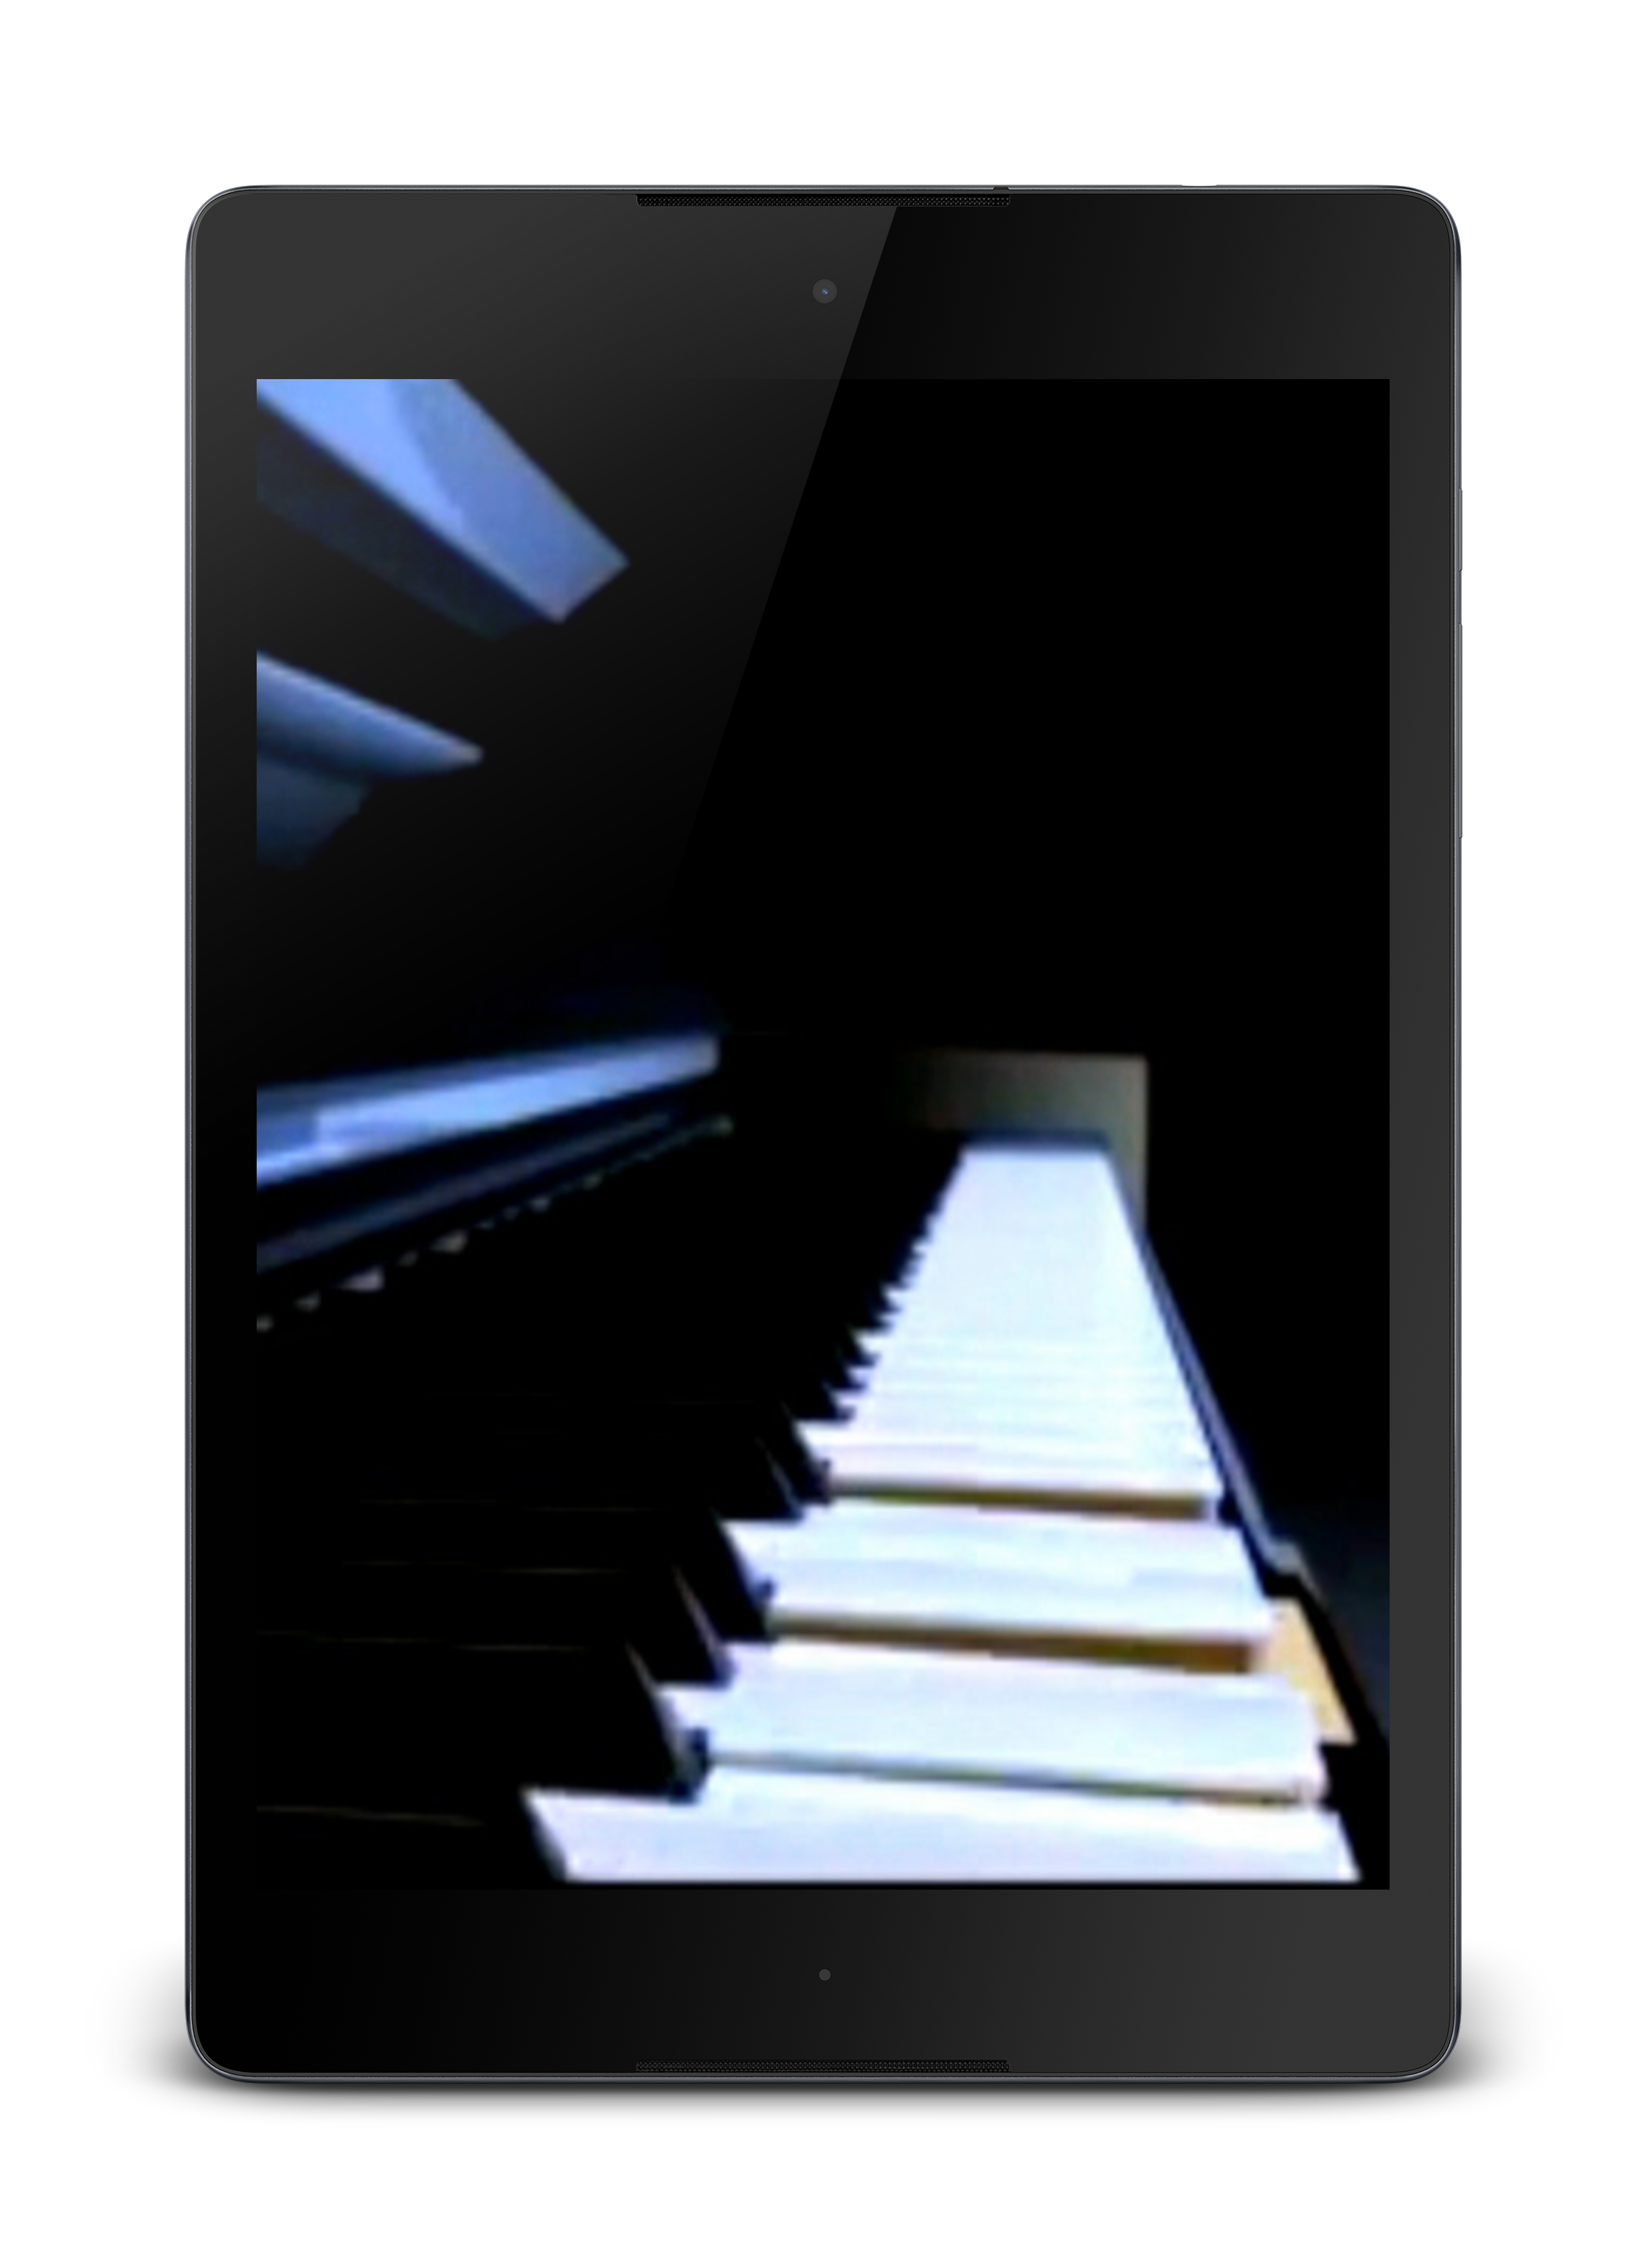 Piano Live Wallpaper